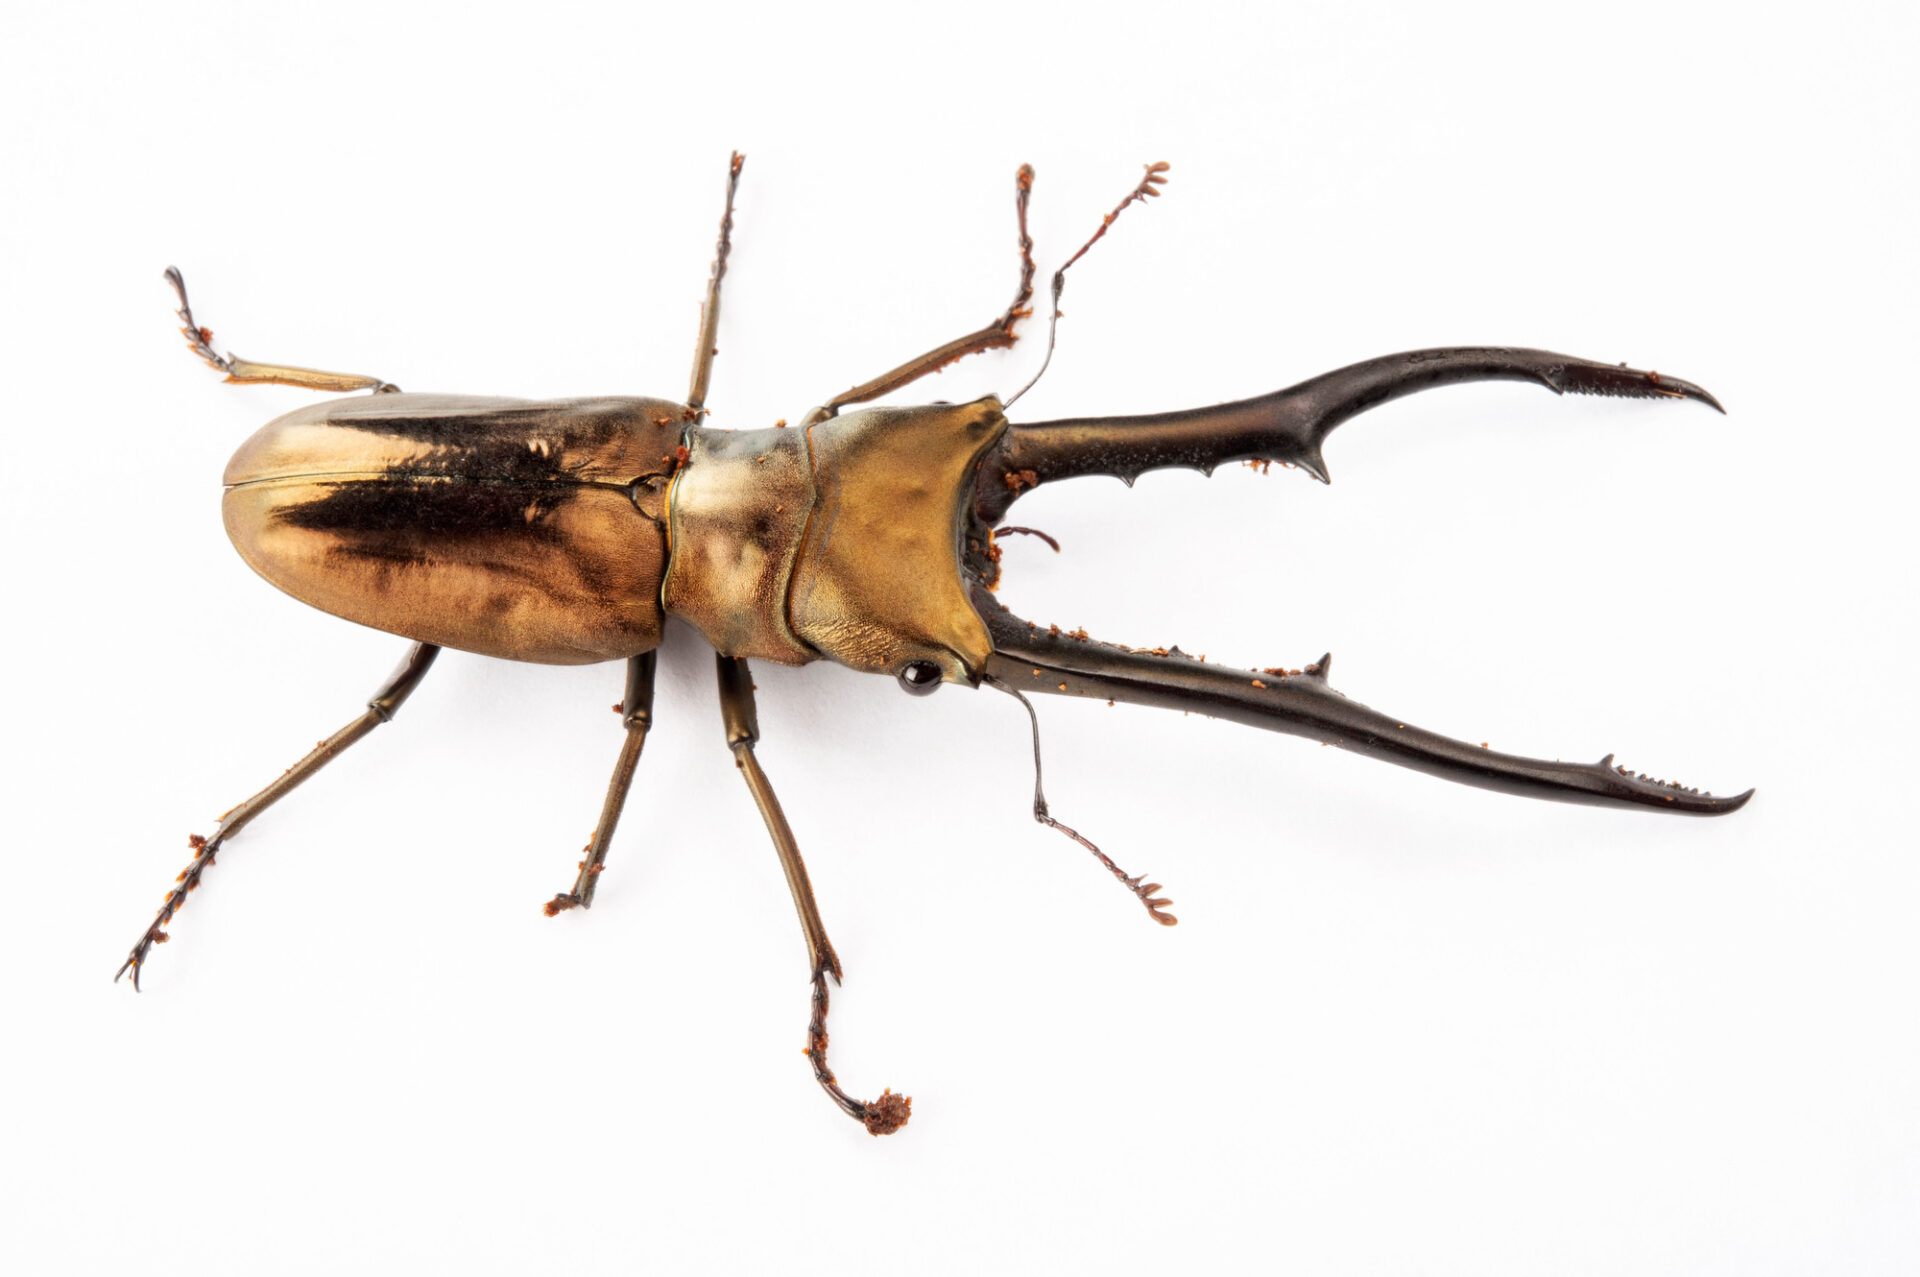 Photo: Long-mandibled stag beetle (Cyclommatus metallifer) at the Insectarium in New Orleans.